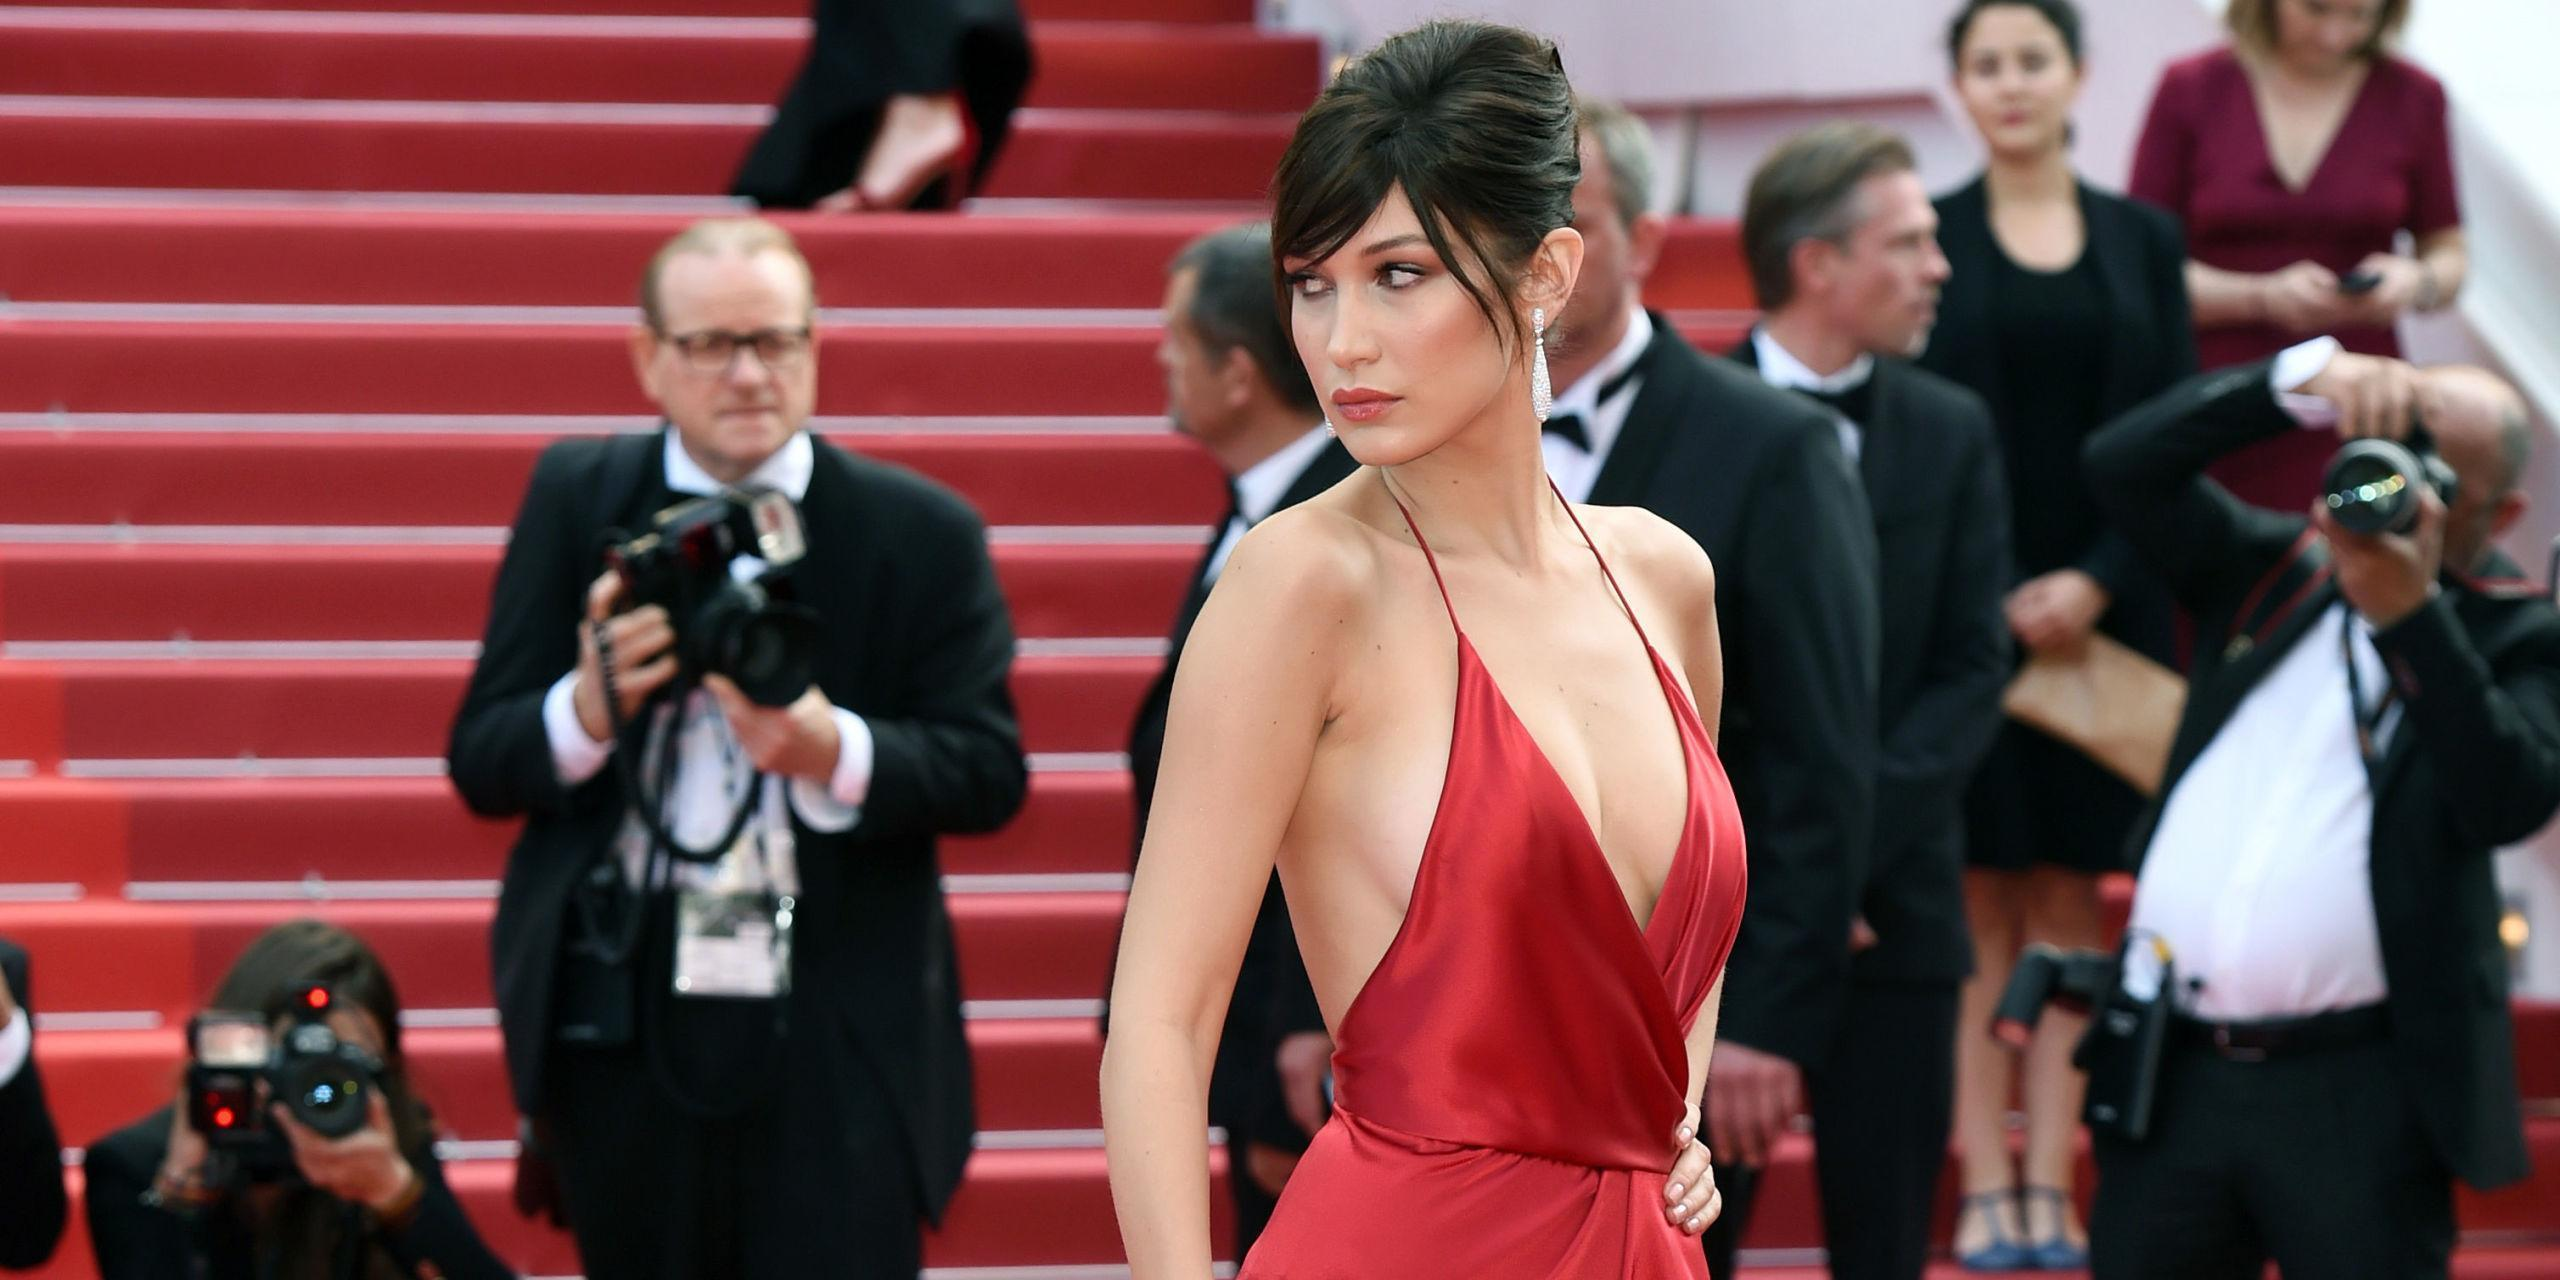 Bella Hadid's Stylist Reveals What Was Going On Underneath That Daring Red Dress